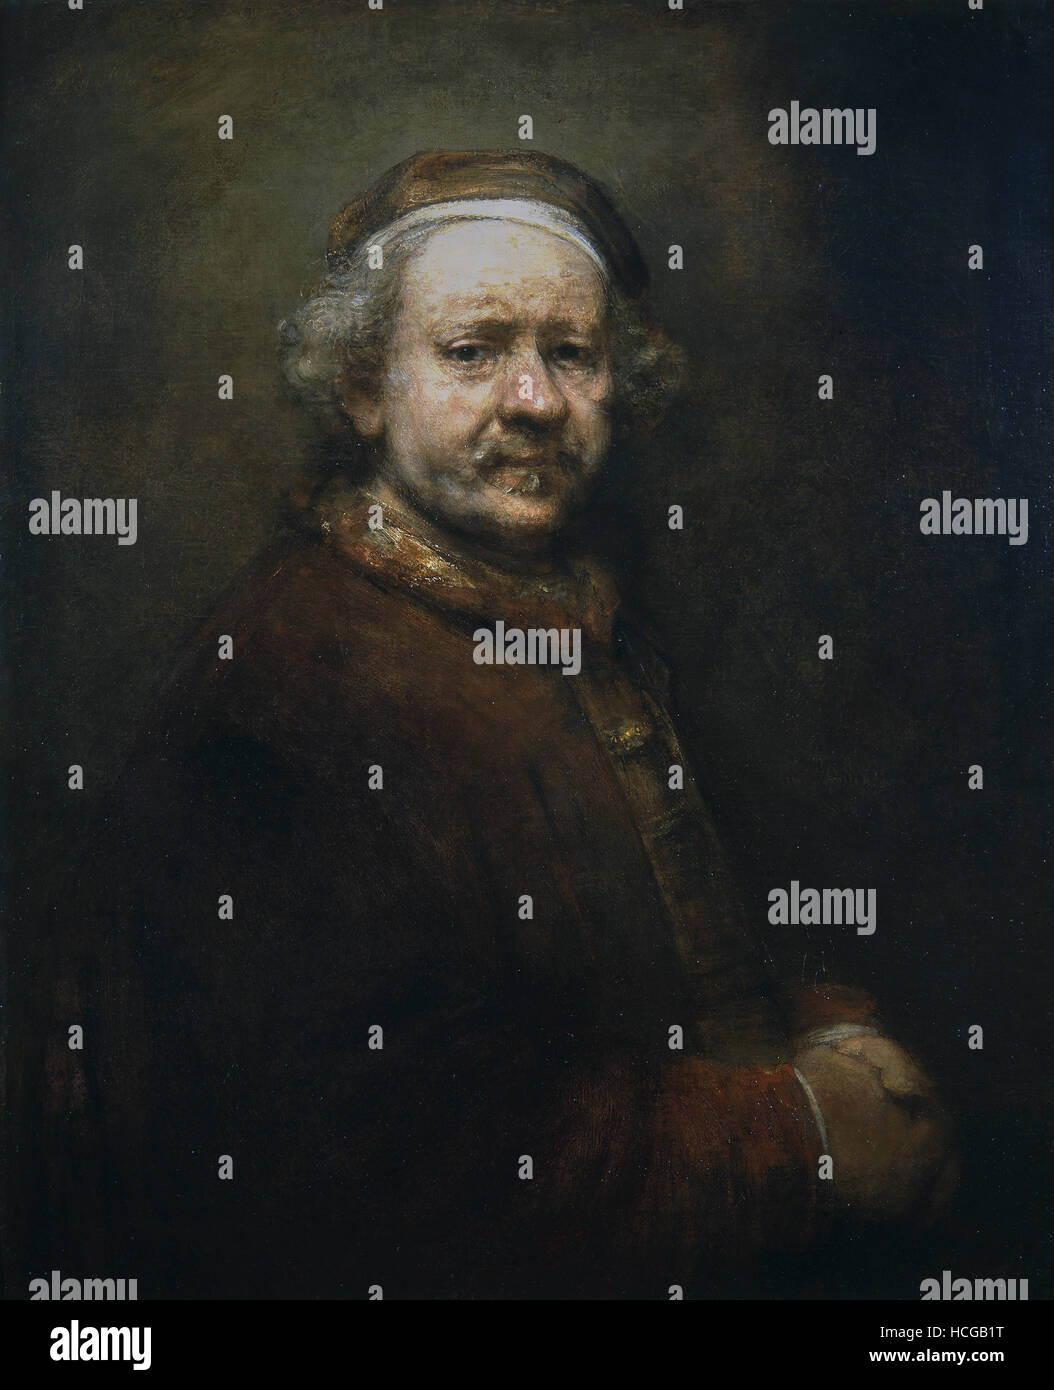 Harmensz Rembrandt - Self Portrait at the Age of 63 - 1669 - Stock Image